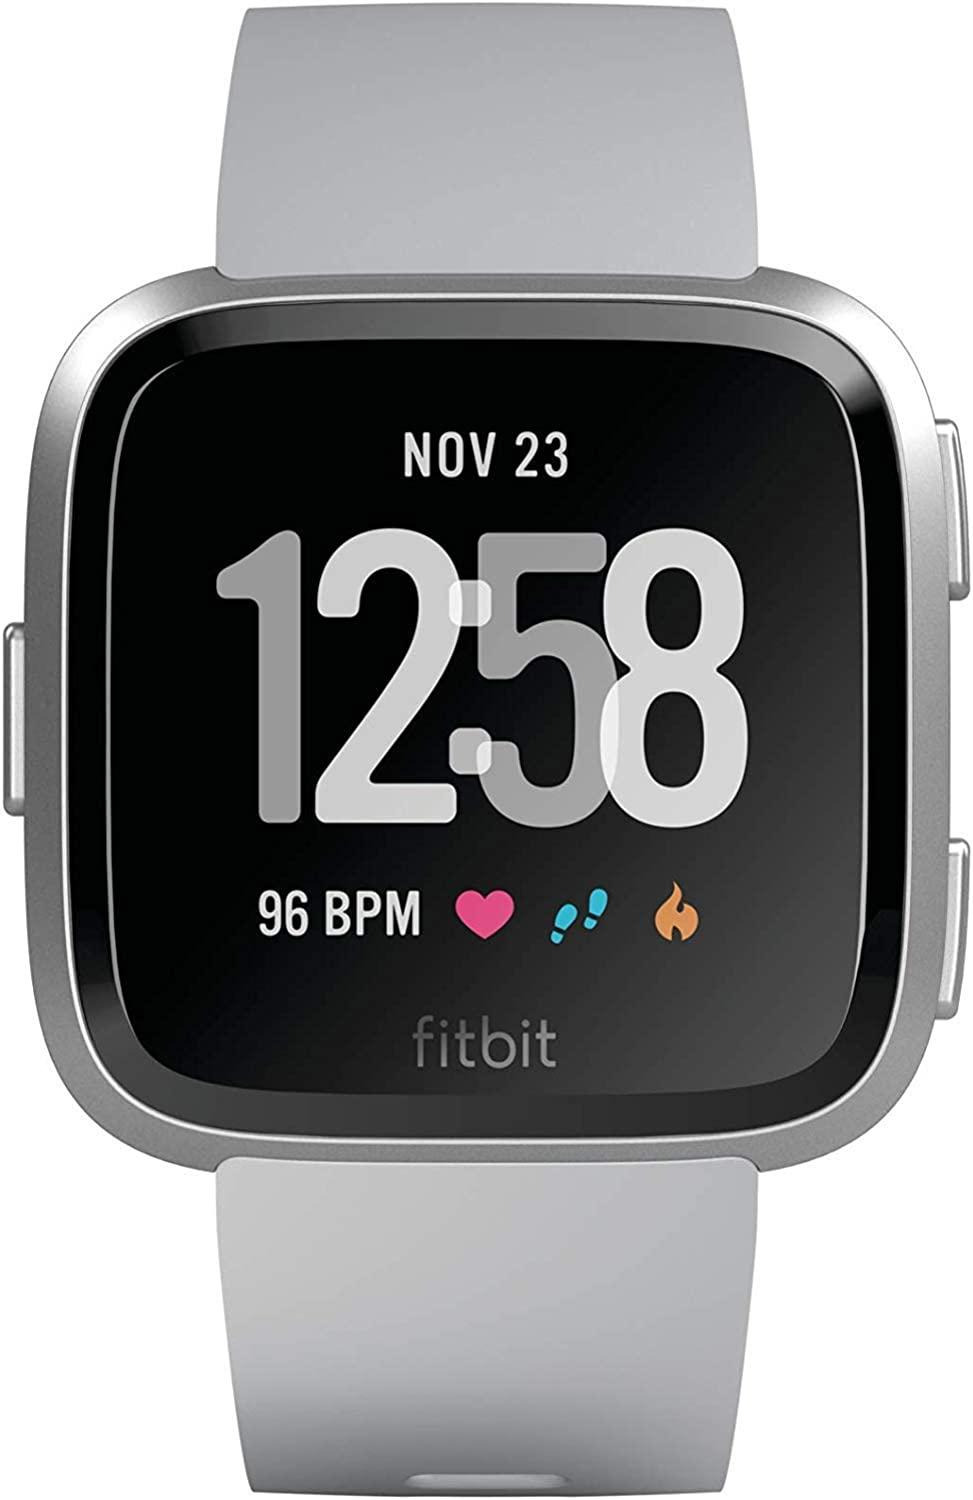 Amazon.com: Fitbit Versa Smart Watch, Gray/Silver Aluminium, One Size (S & L Bands Included)